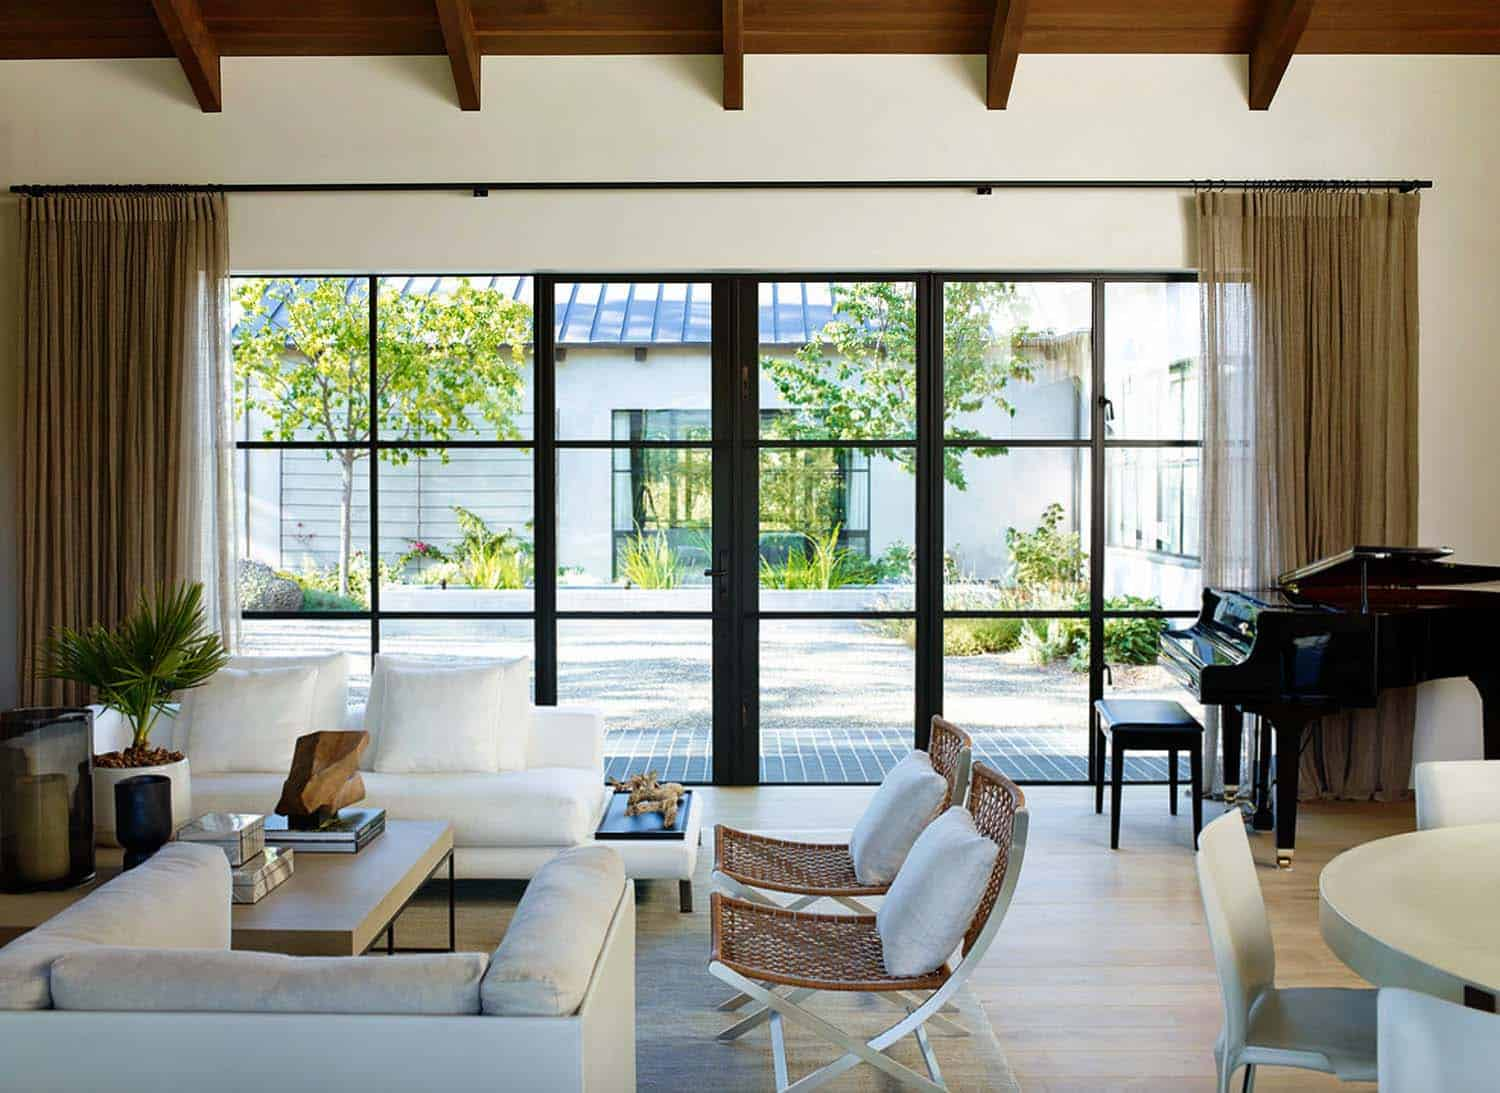 Contemporary Courtyard House-Butler Armsden Architects-03-1 Kindesign